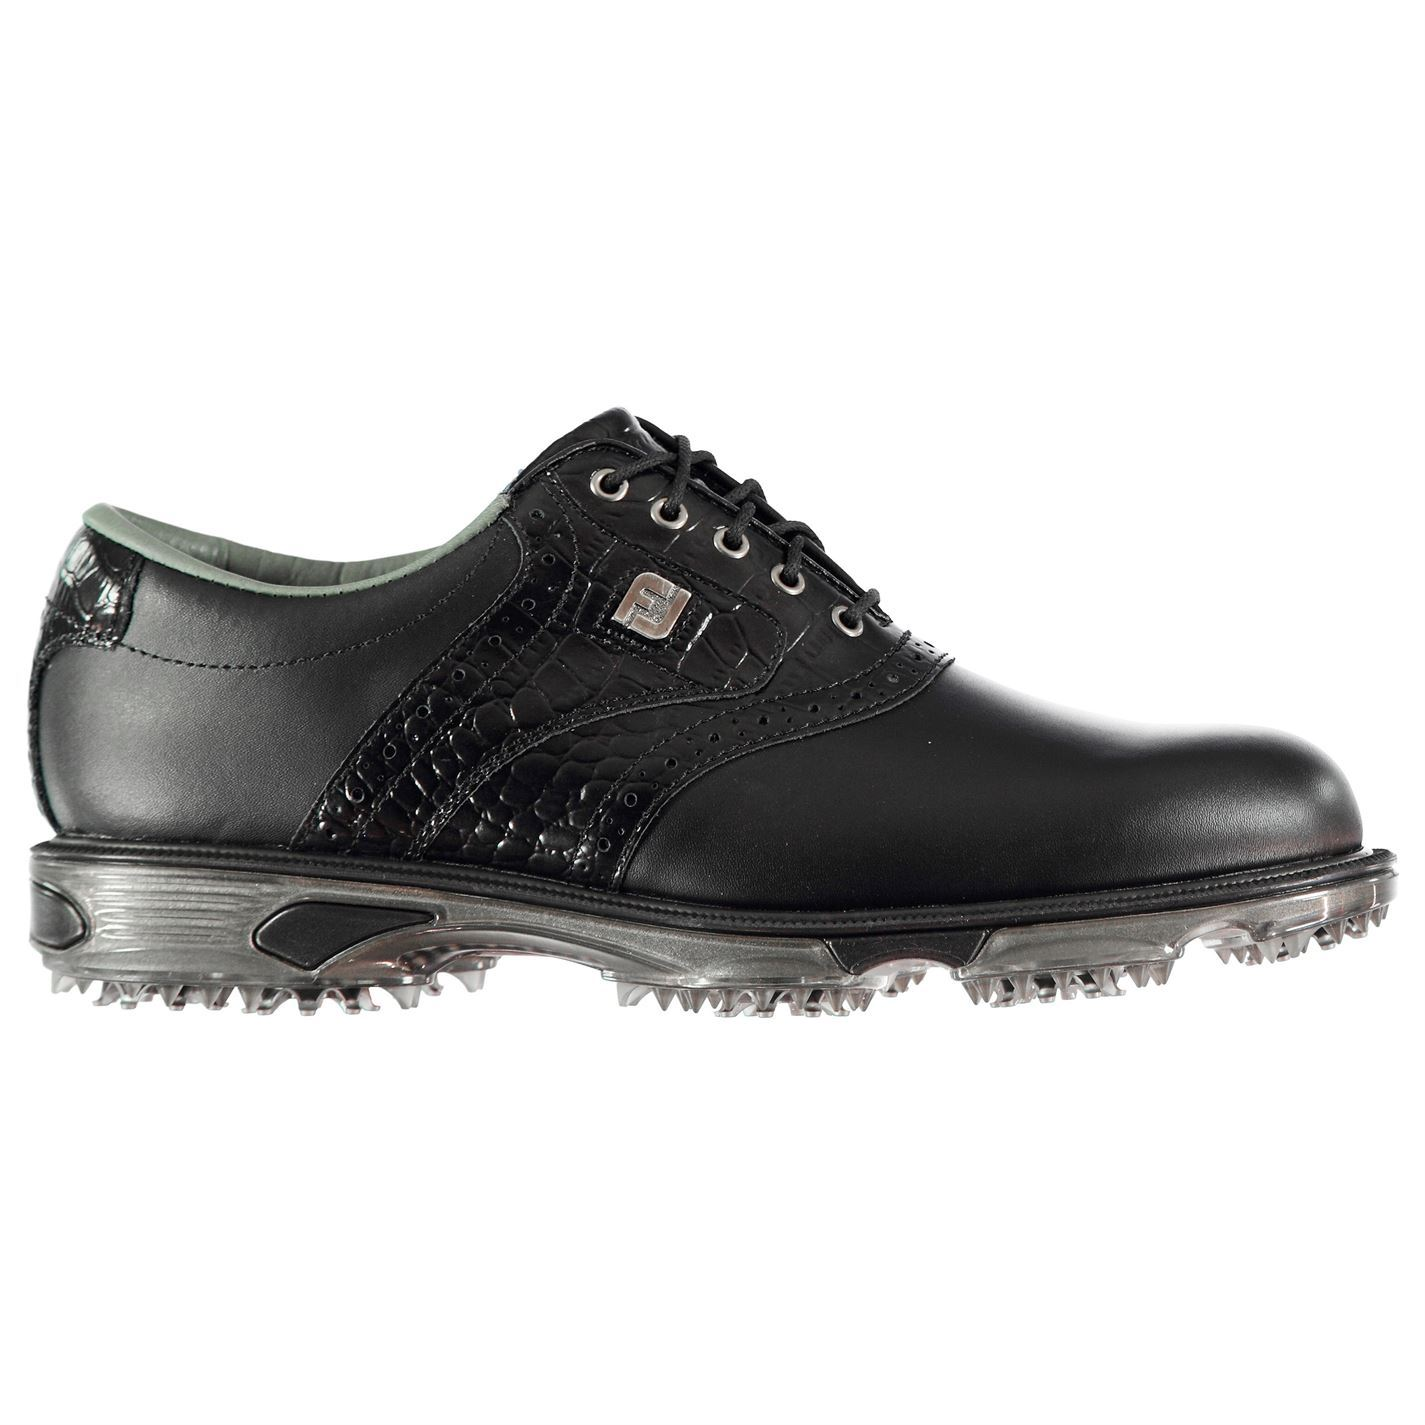 Footjoy-DryJoys-Tour-Golf-Shoes-Mens-Spikes-Footwear thumbnail 5